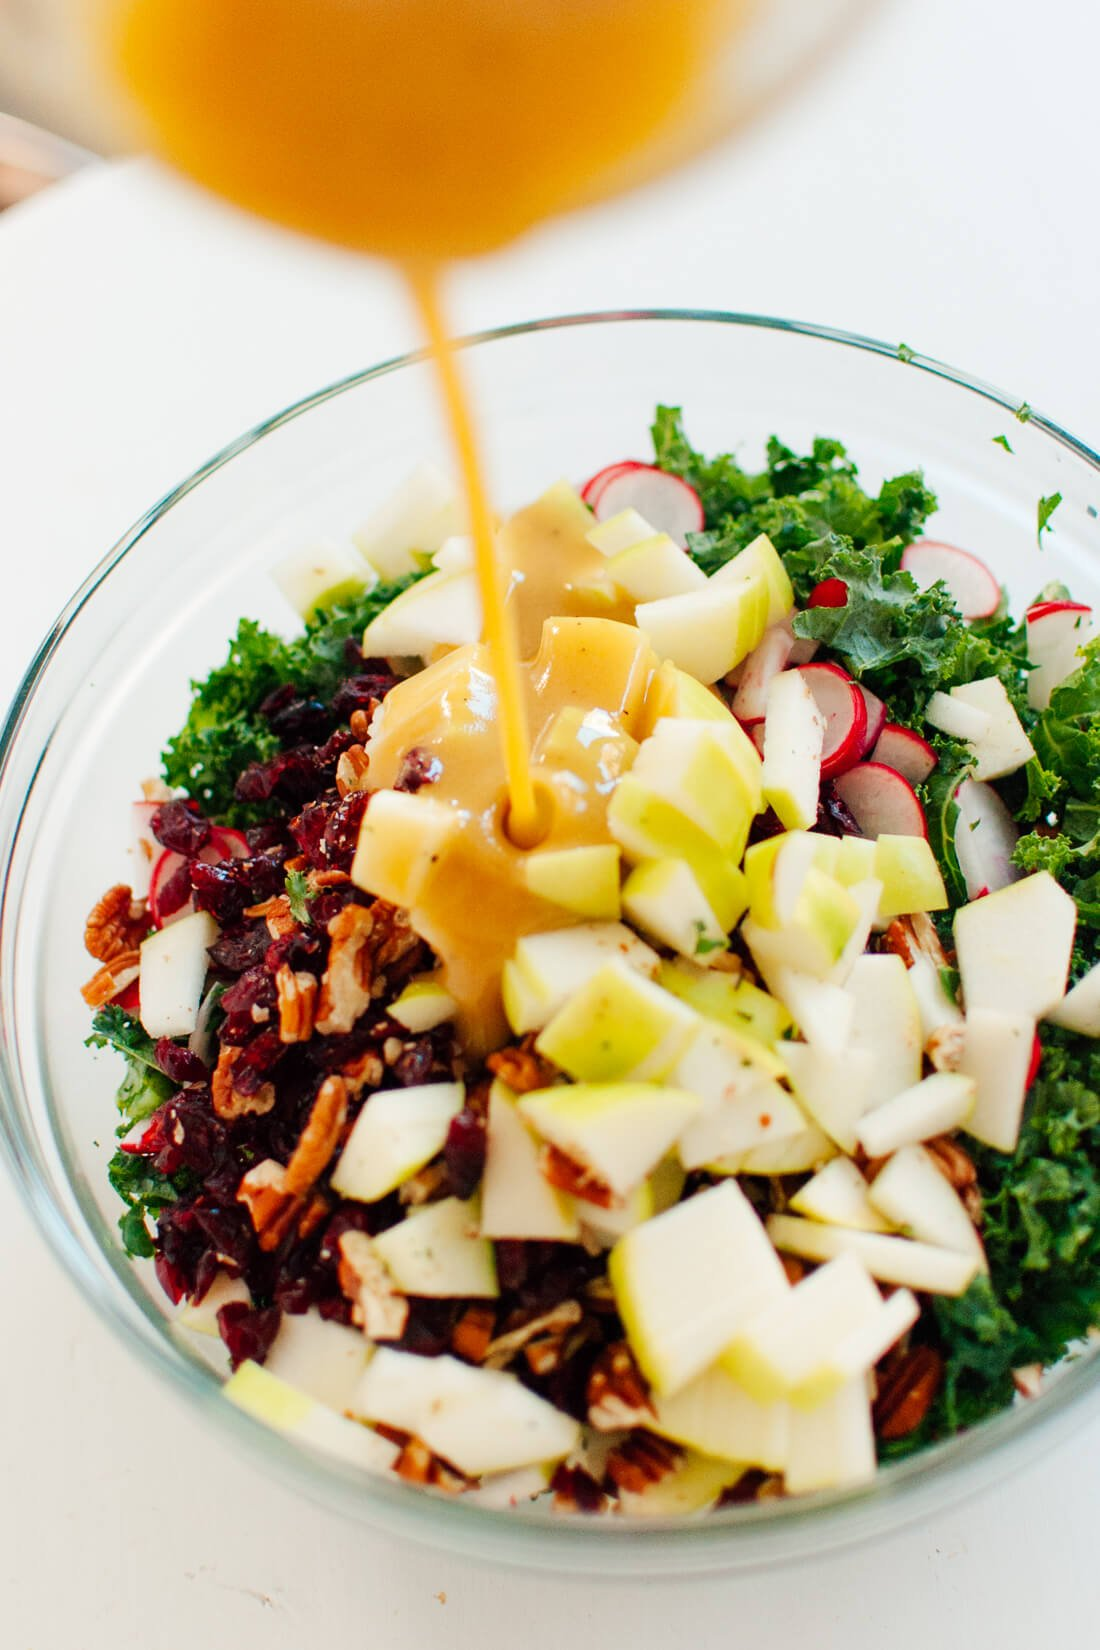 Kale salad with honey mustard dressing